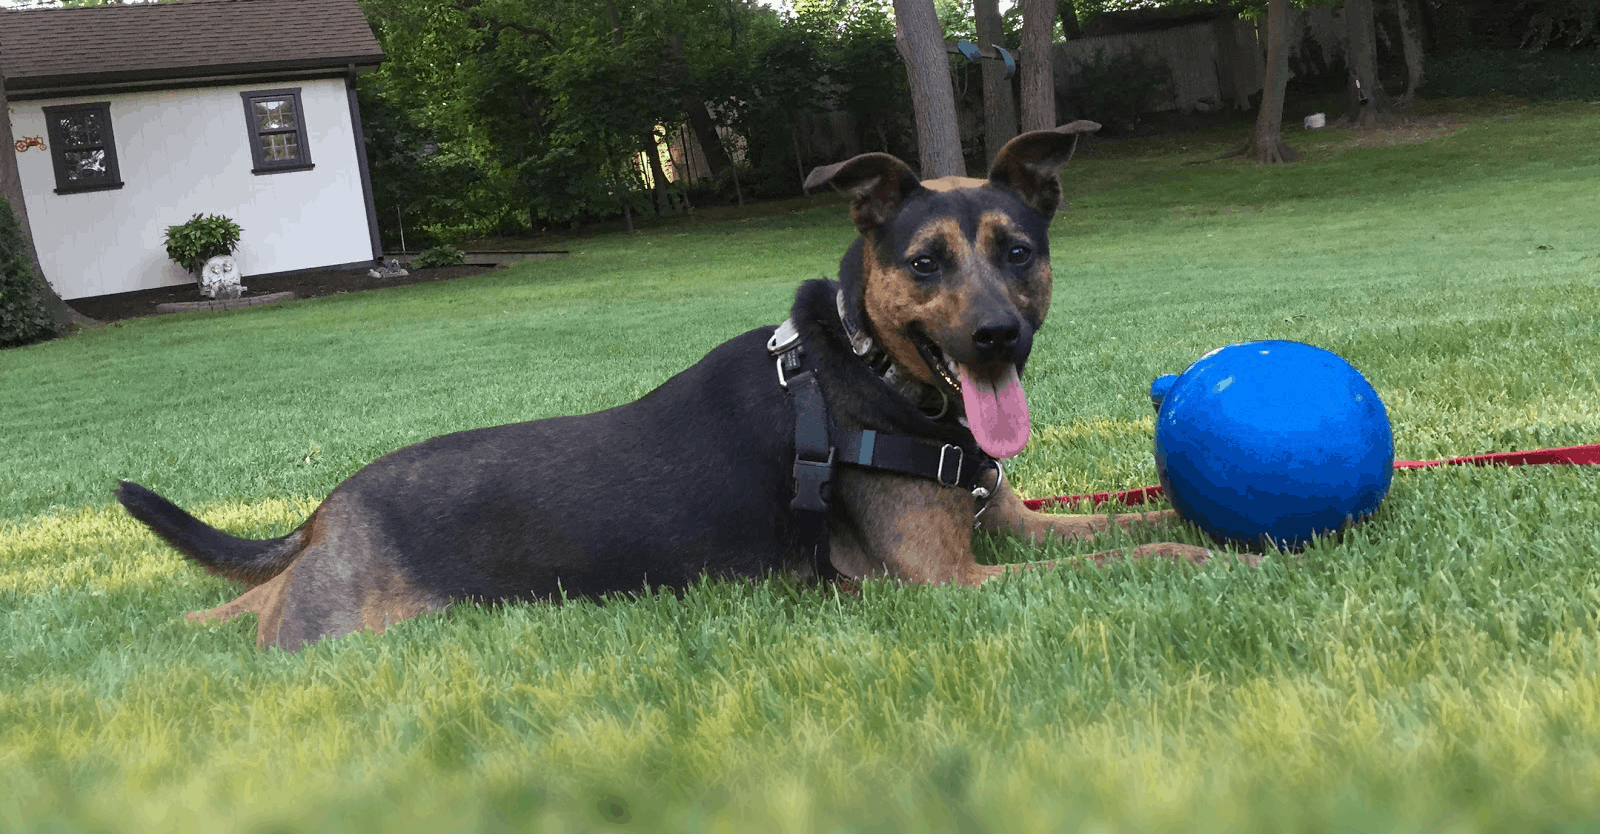 Gerber the dog with a blue ball on a lawn smiling at the camera with tongue out.